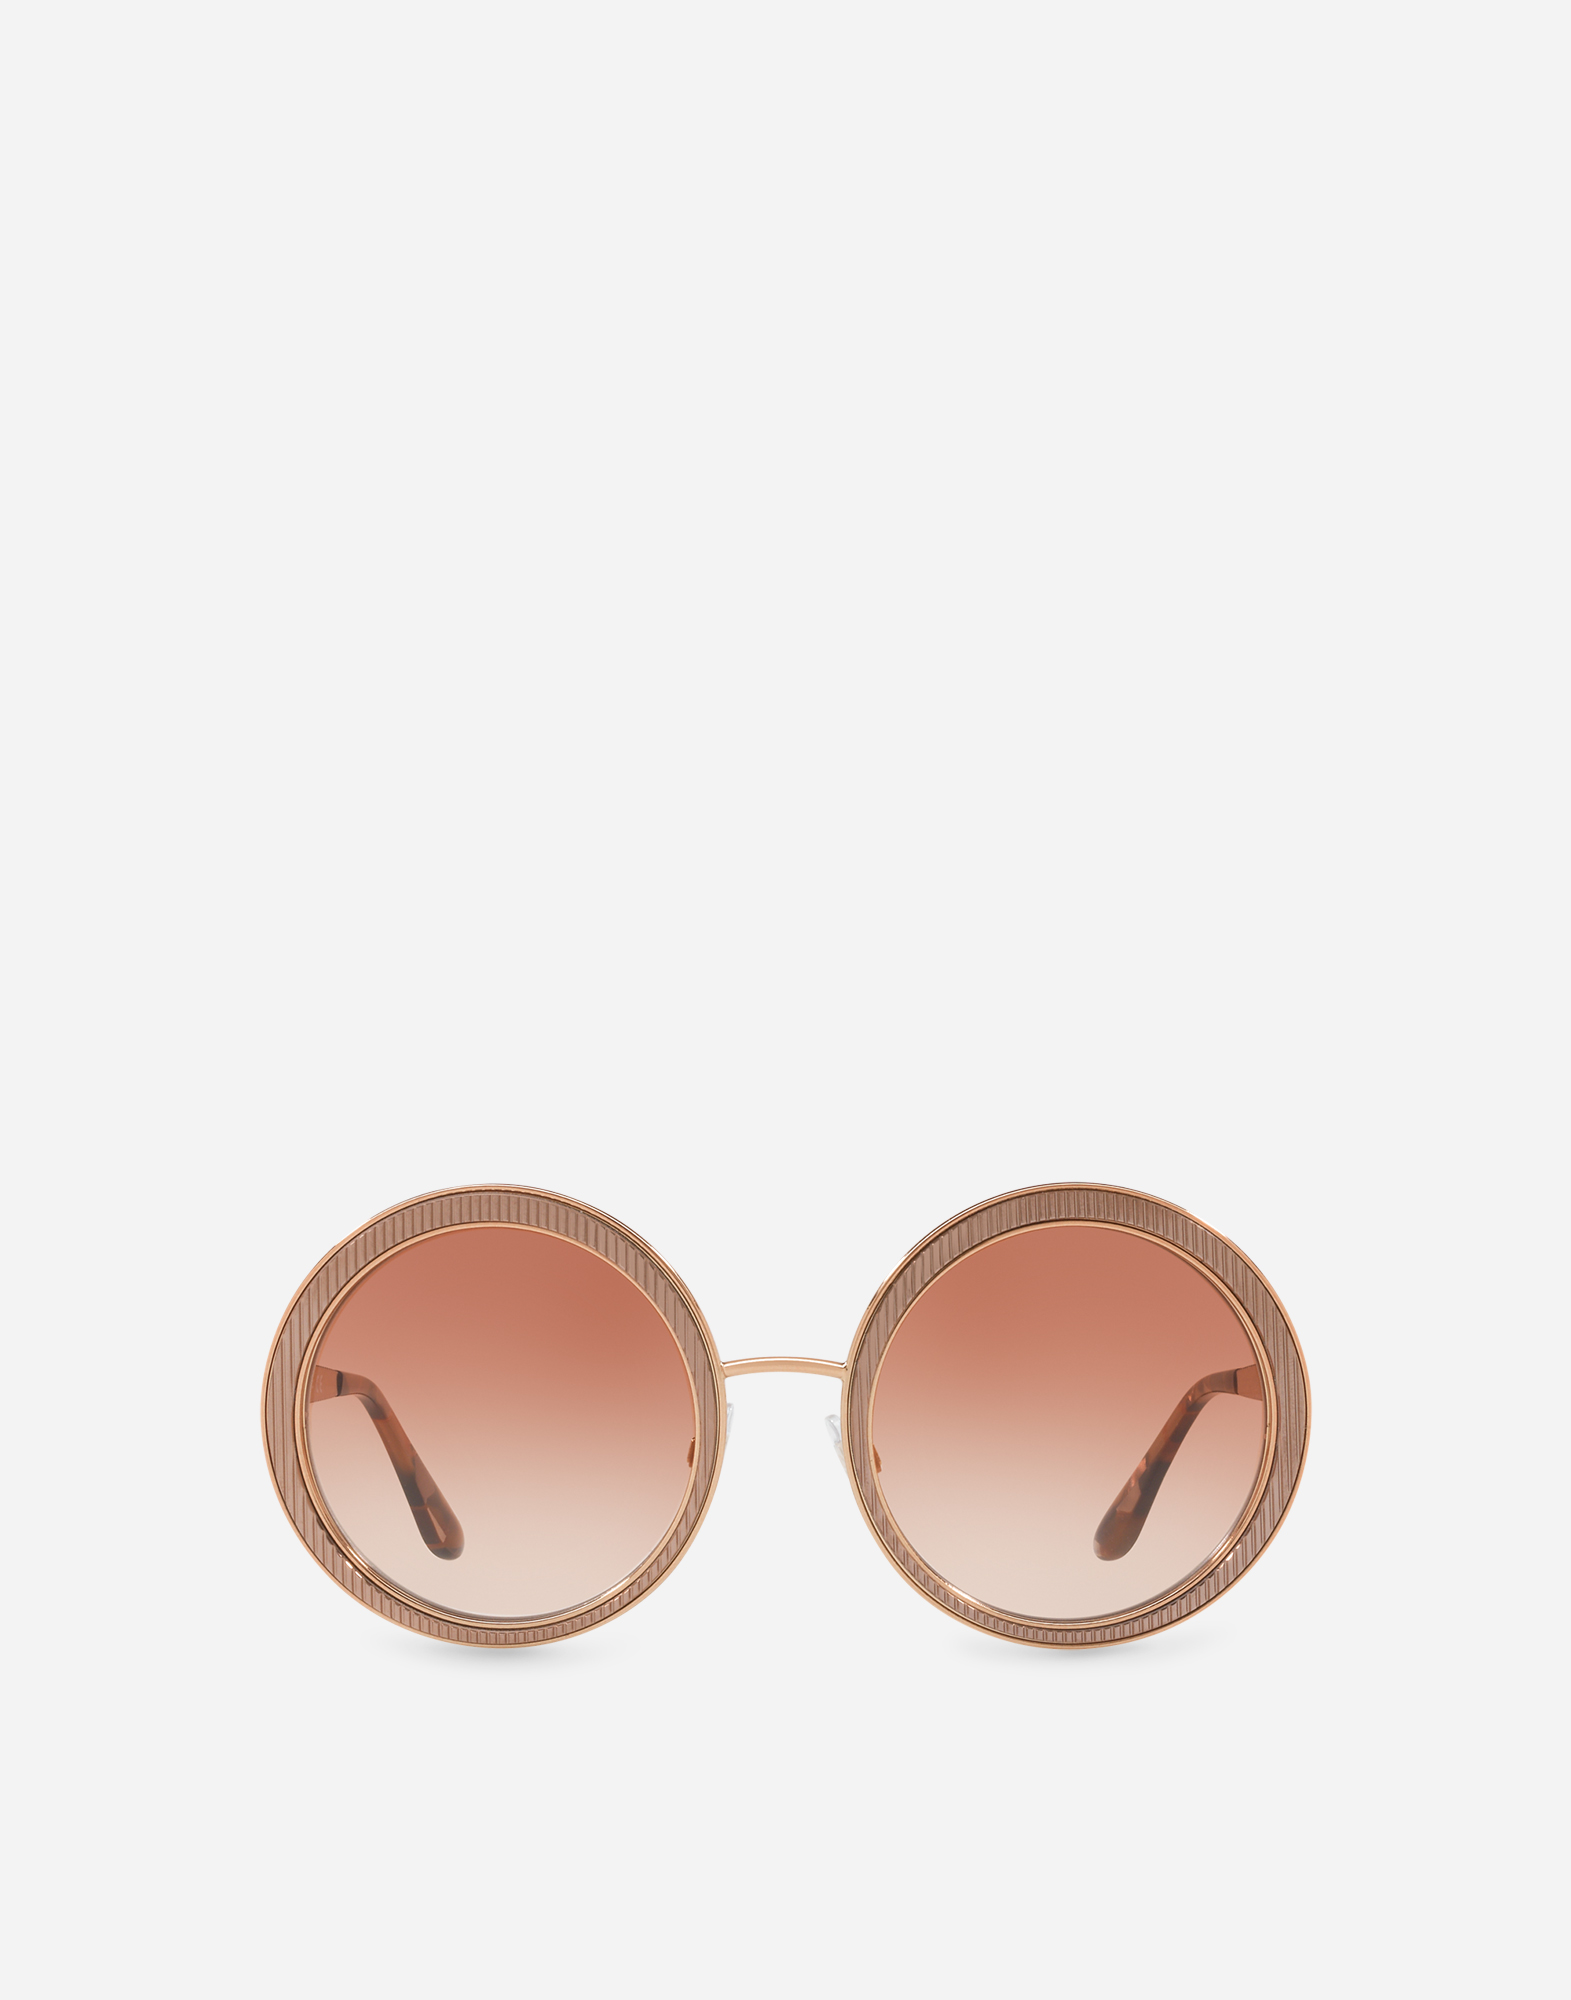 COPPER-PINK ROUND SUNGLASSES